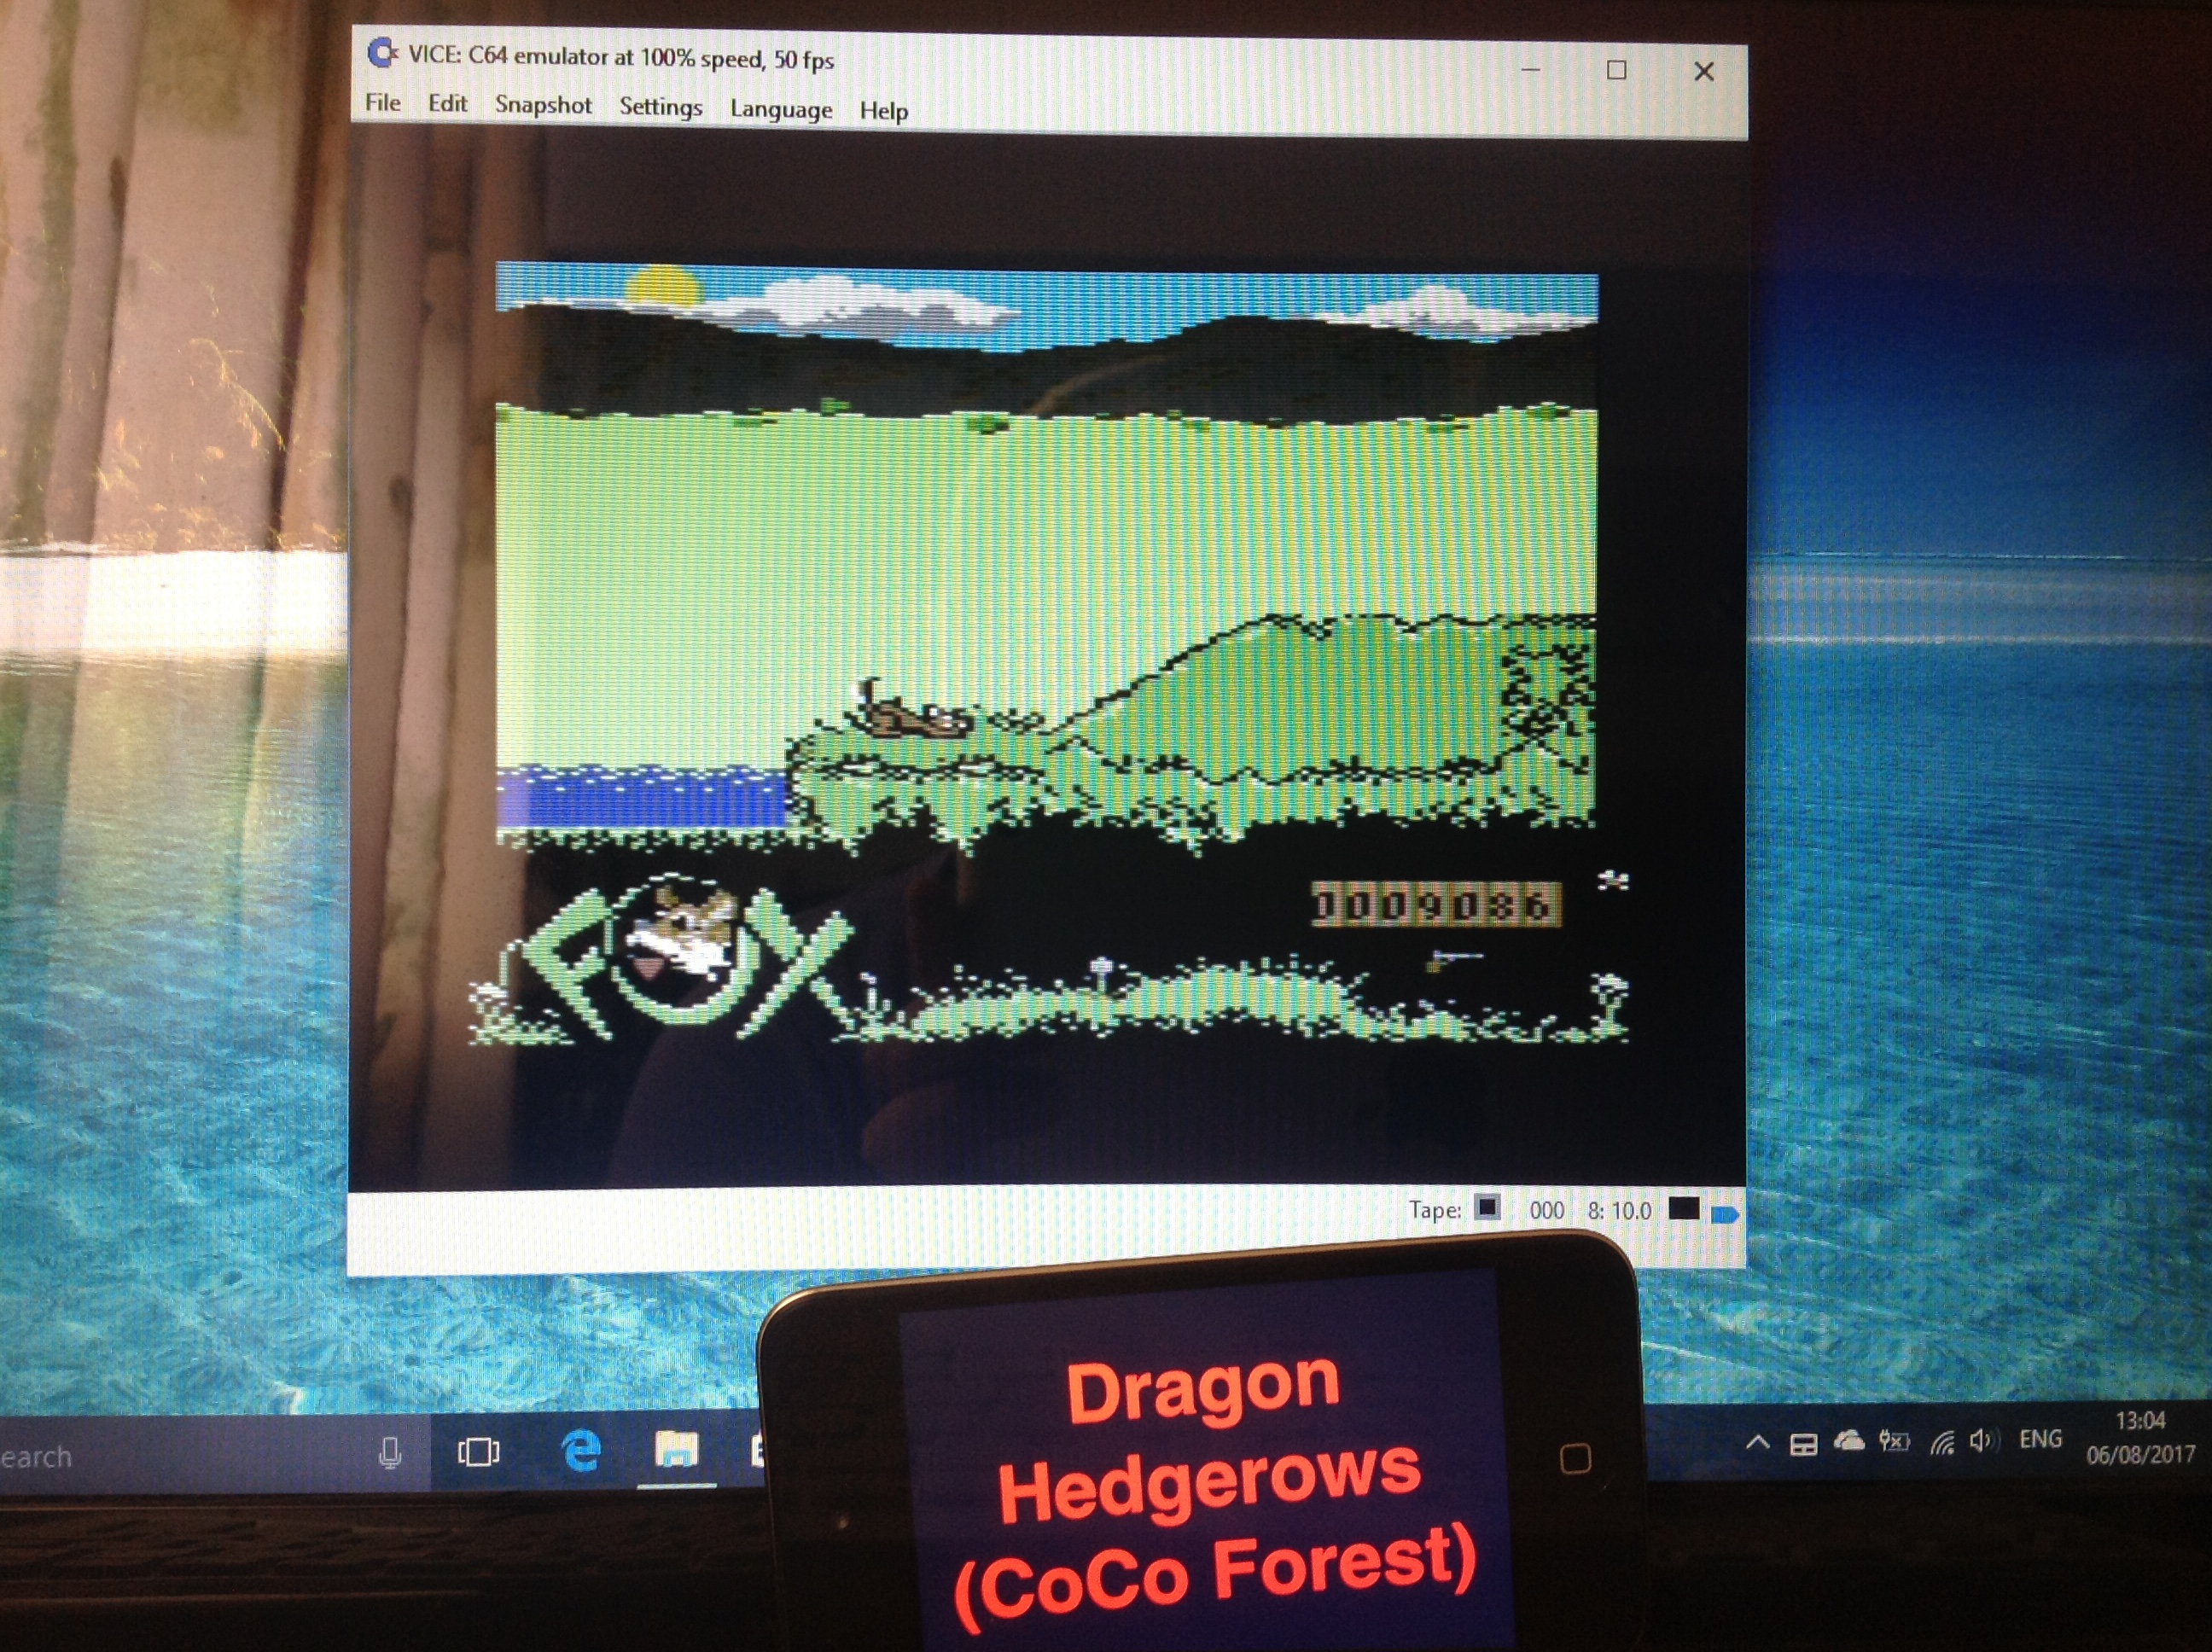 CoCoForest: Fox Fights Back (Commodore 64 Emulated) 9,086 points on 2017-08-06 08:21:27